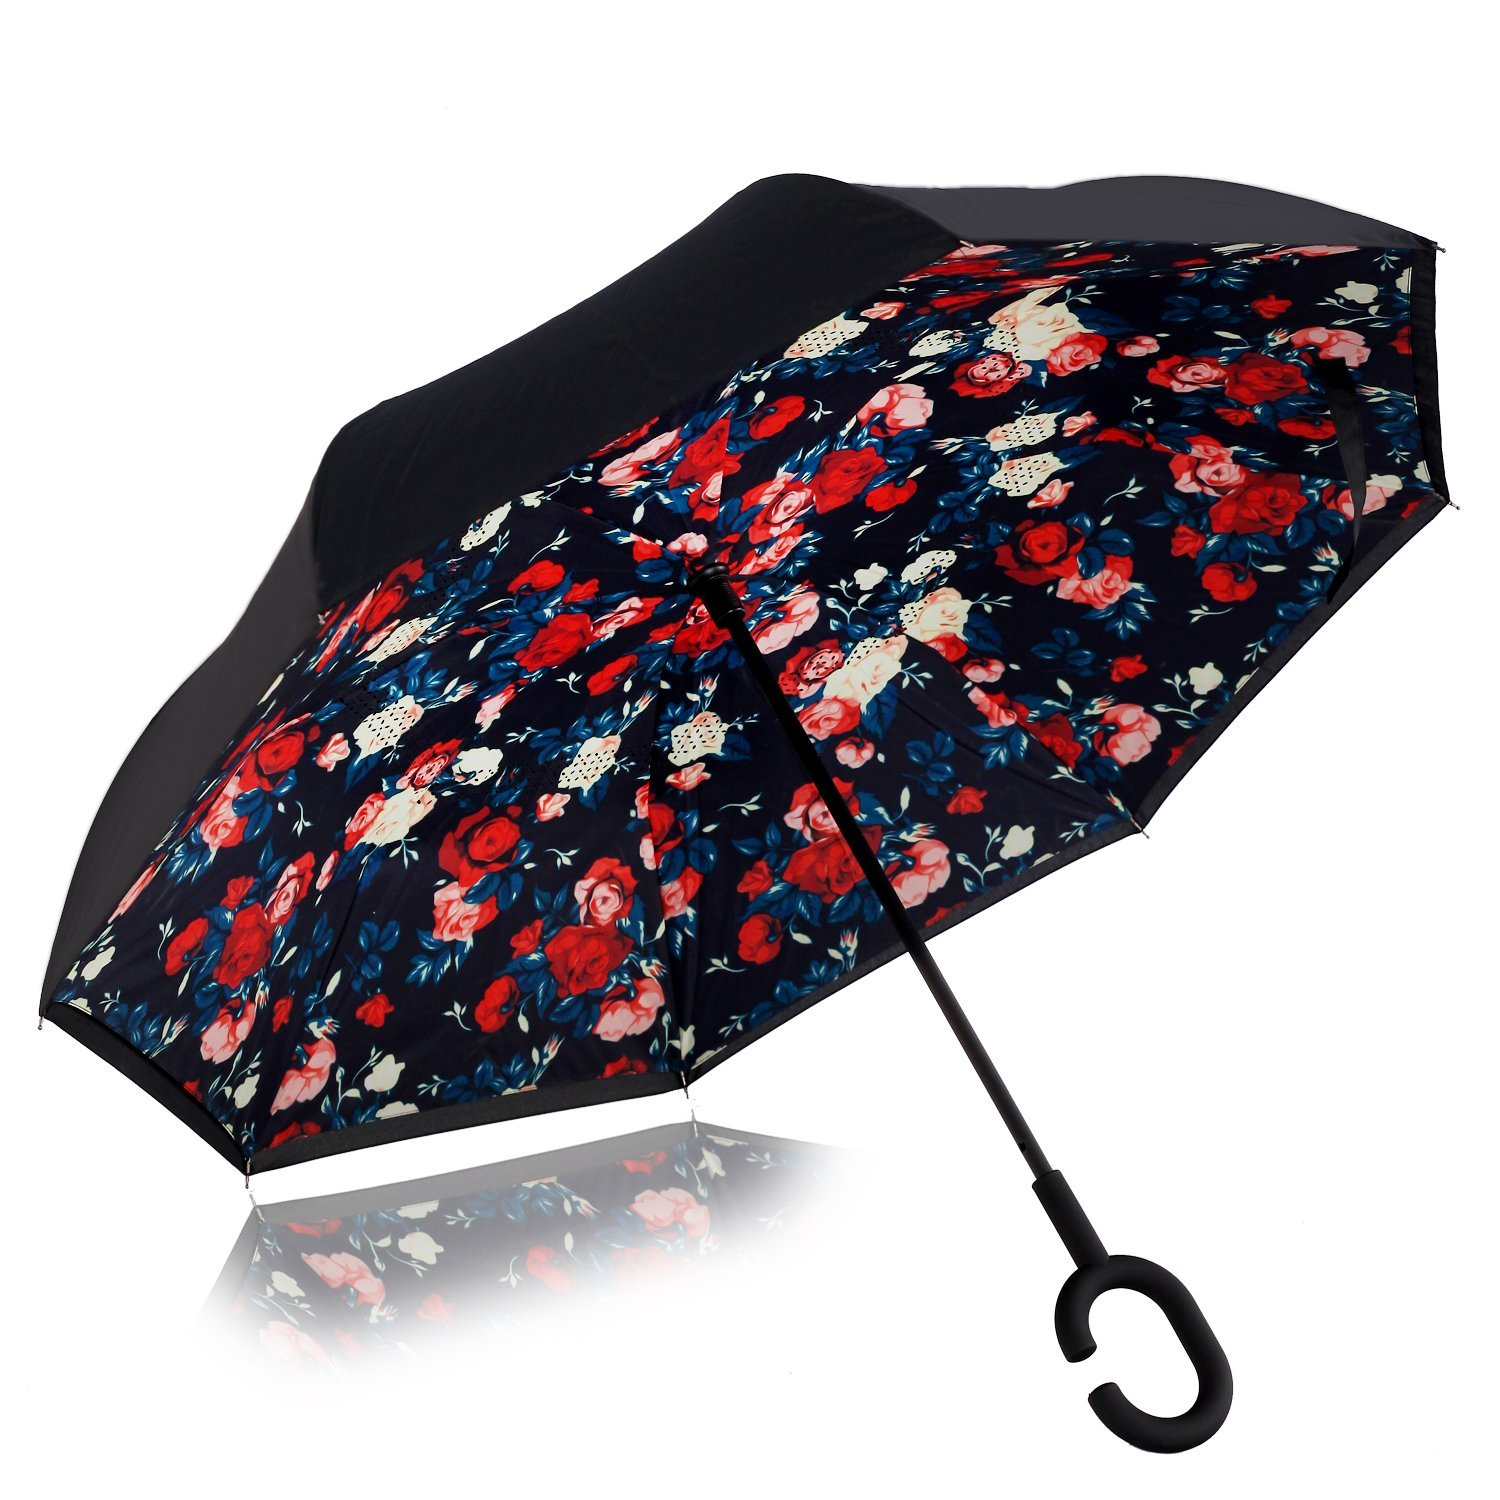 Inverted Umbrella,Double Layer Reverse Umbrella for Car and Outdoor Use by Monstleo, Windproof UV Protection Big Straight Umbrella With C-Shaped Handle and Carrying Bag